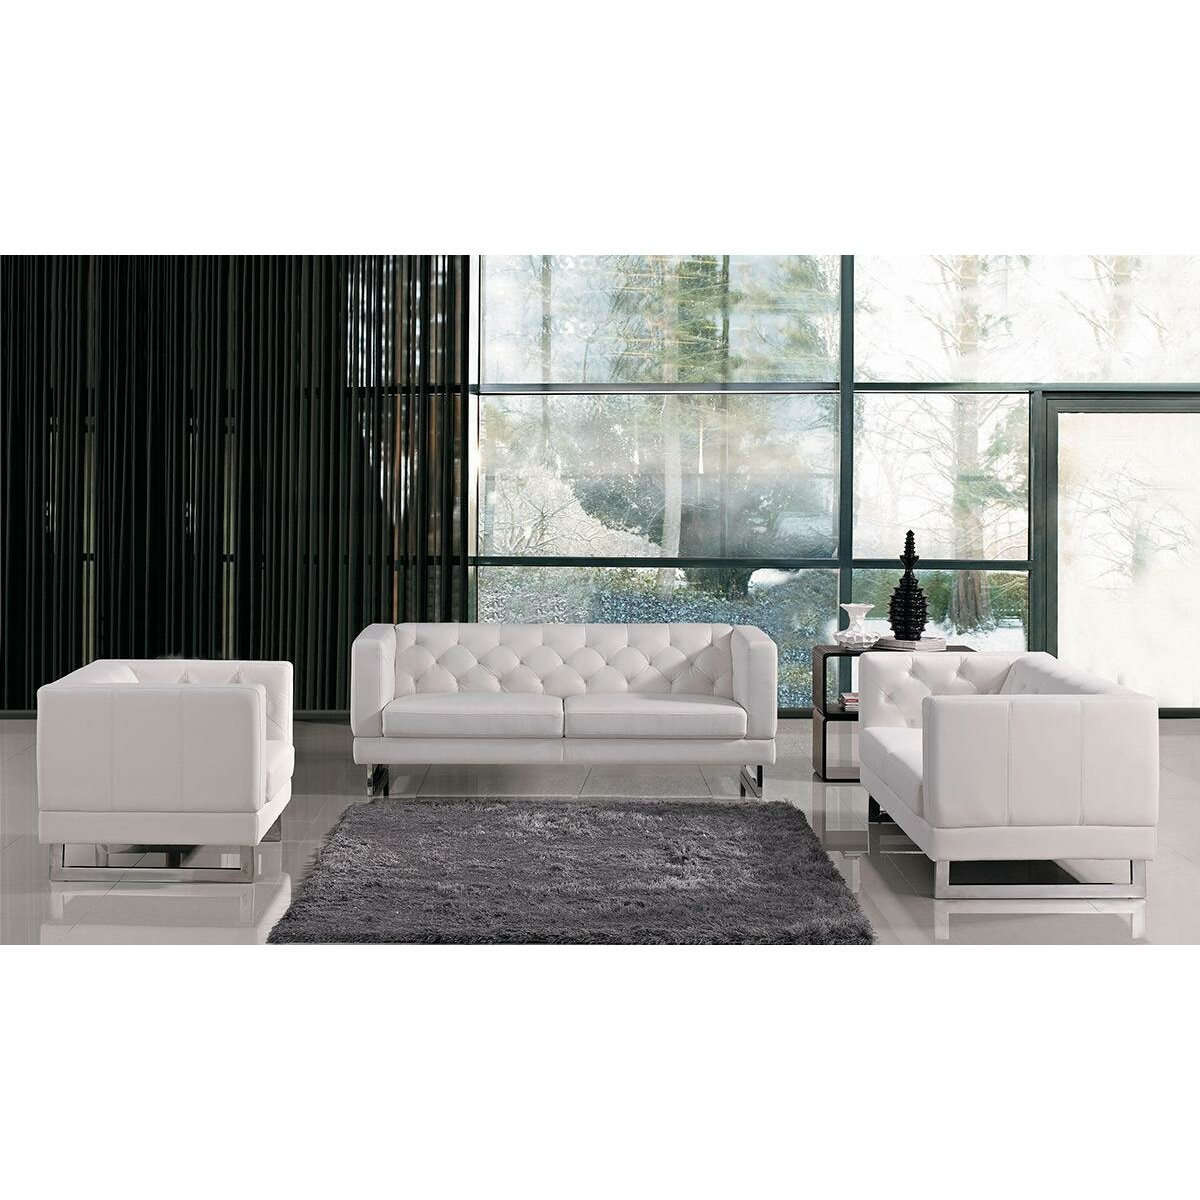 windsor modern tufted eco leather living room set reviews wayfair